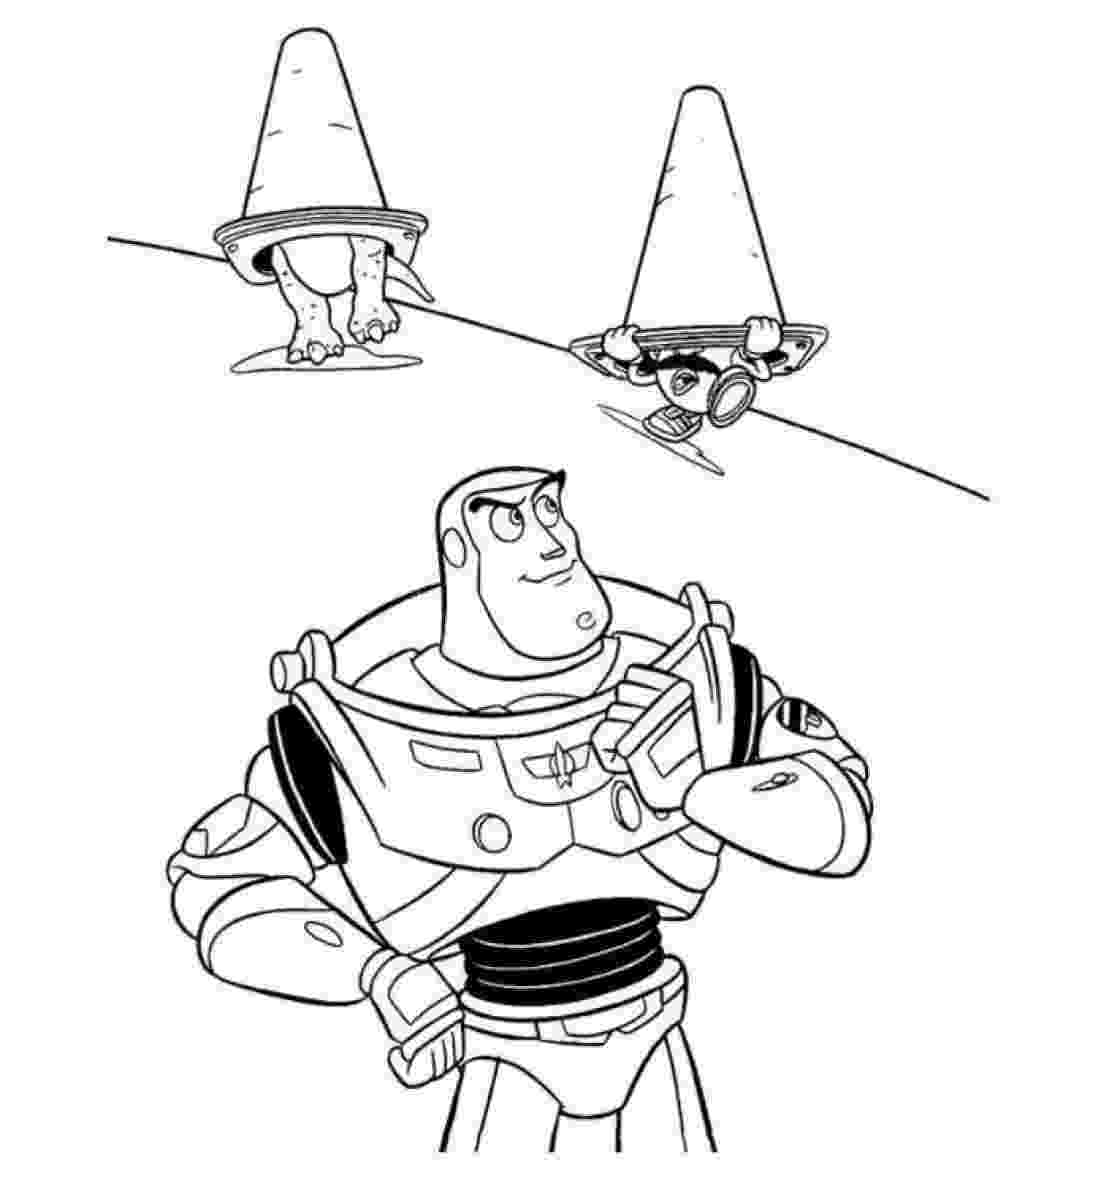 buzz lightyear coloring pages buzz lightyear coloring pages coloring pages to print coloring lightyear buzz pages